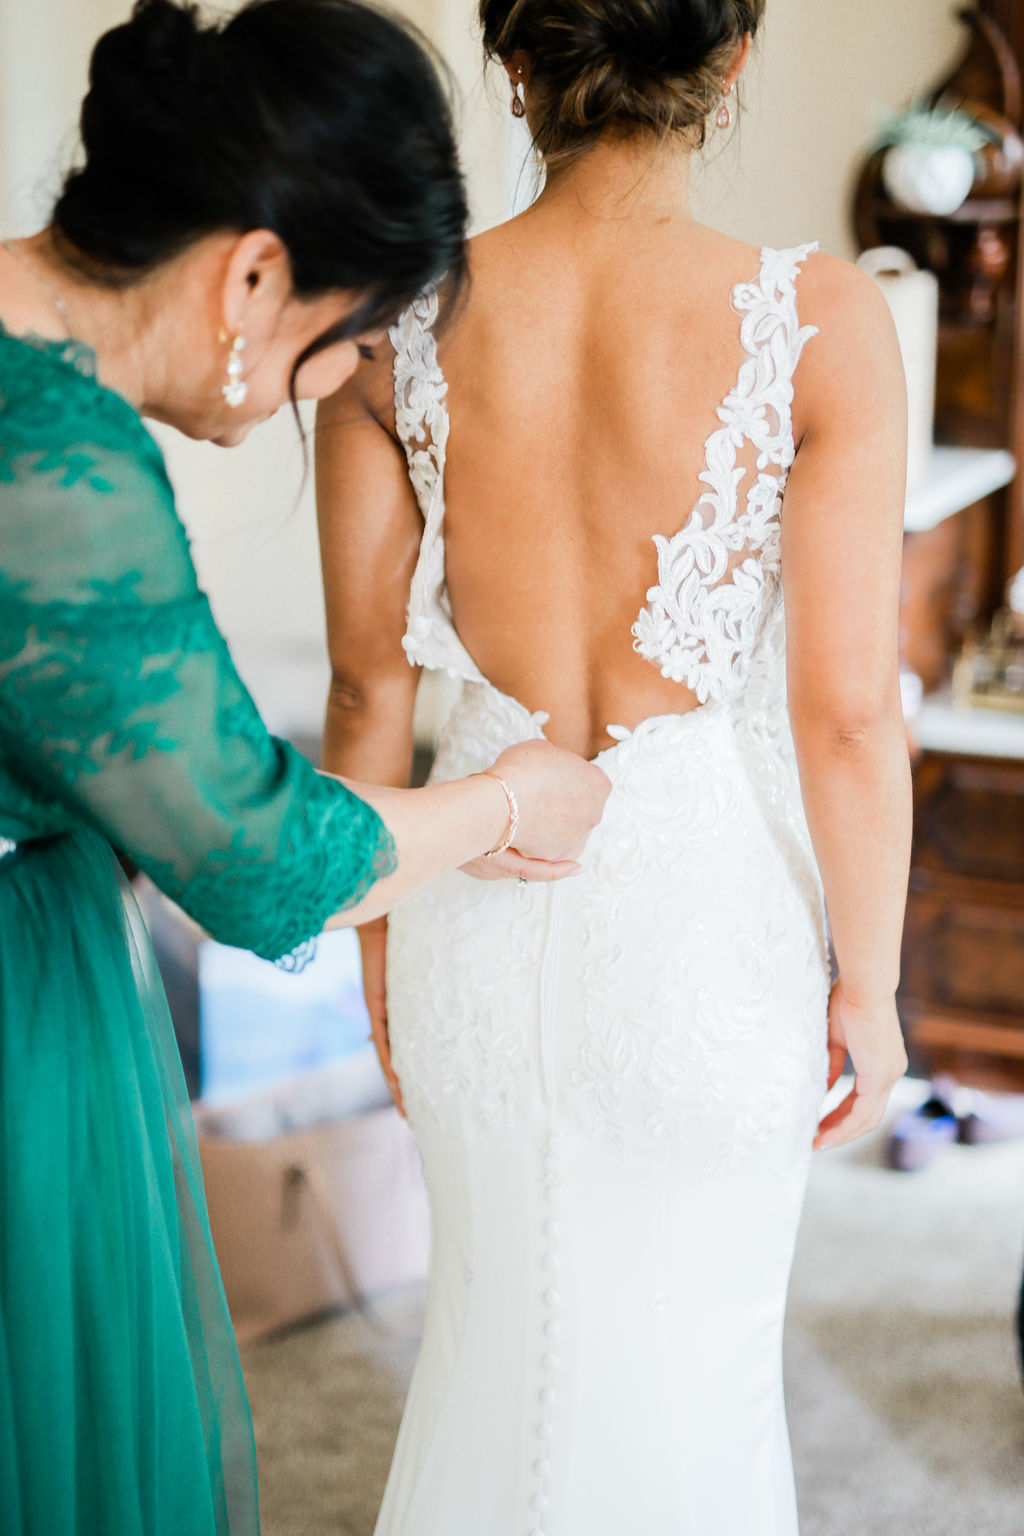 Lace wedding dress design captured by Maria Gloer Photography